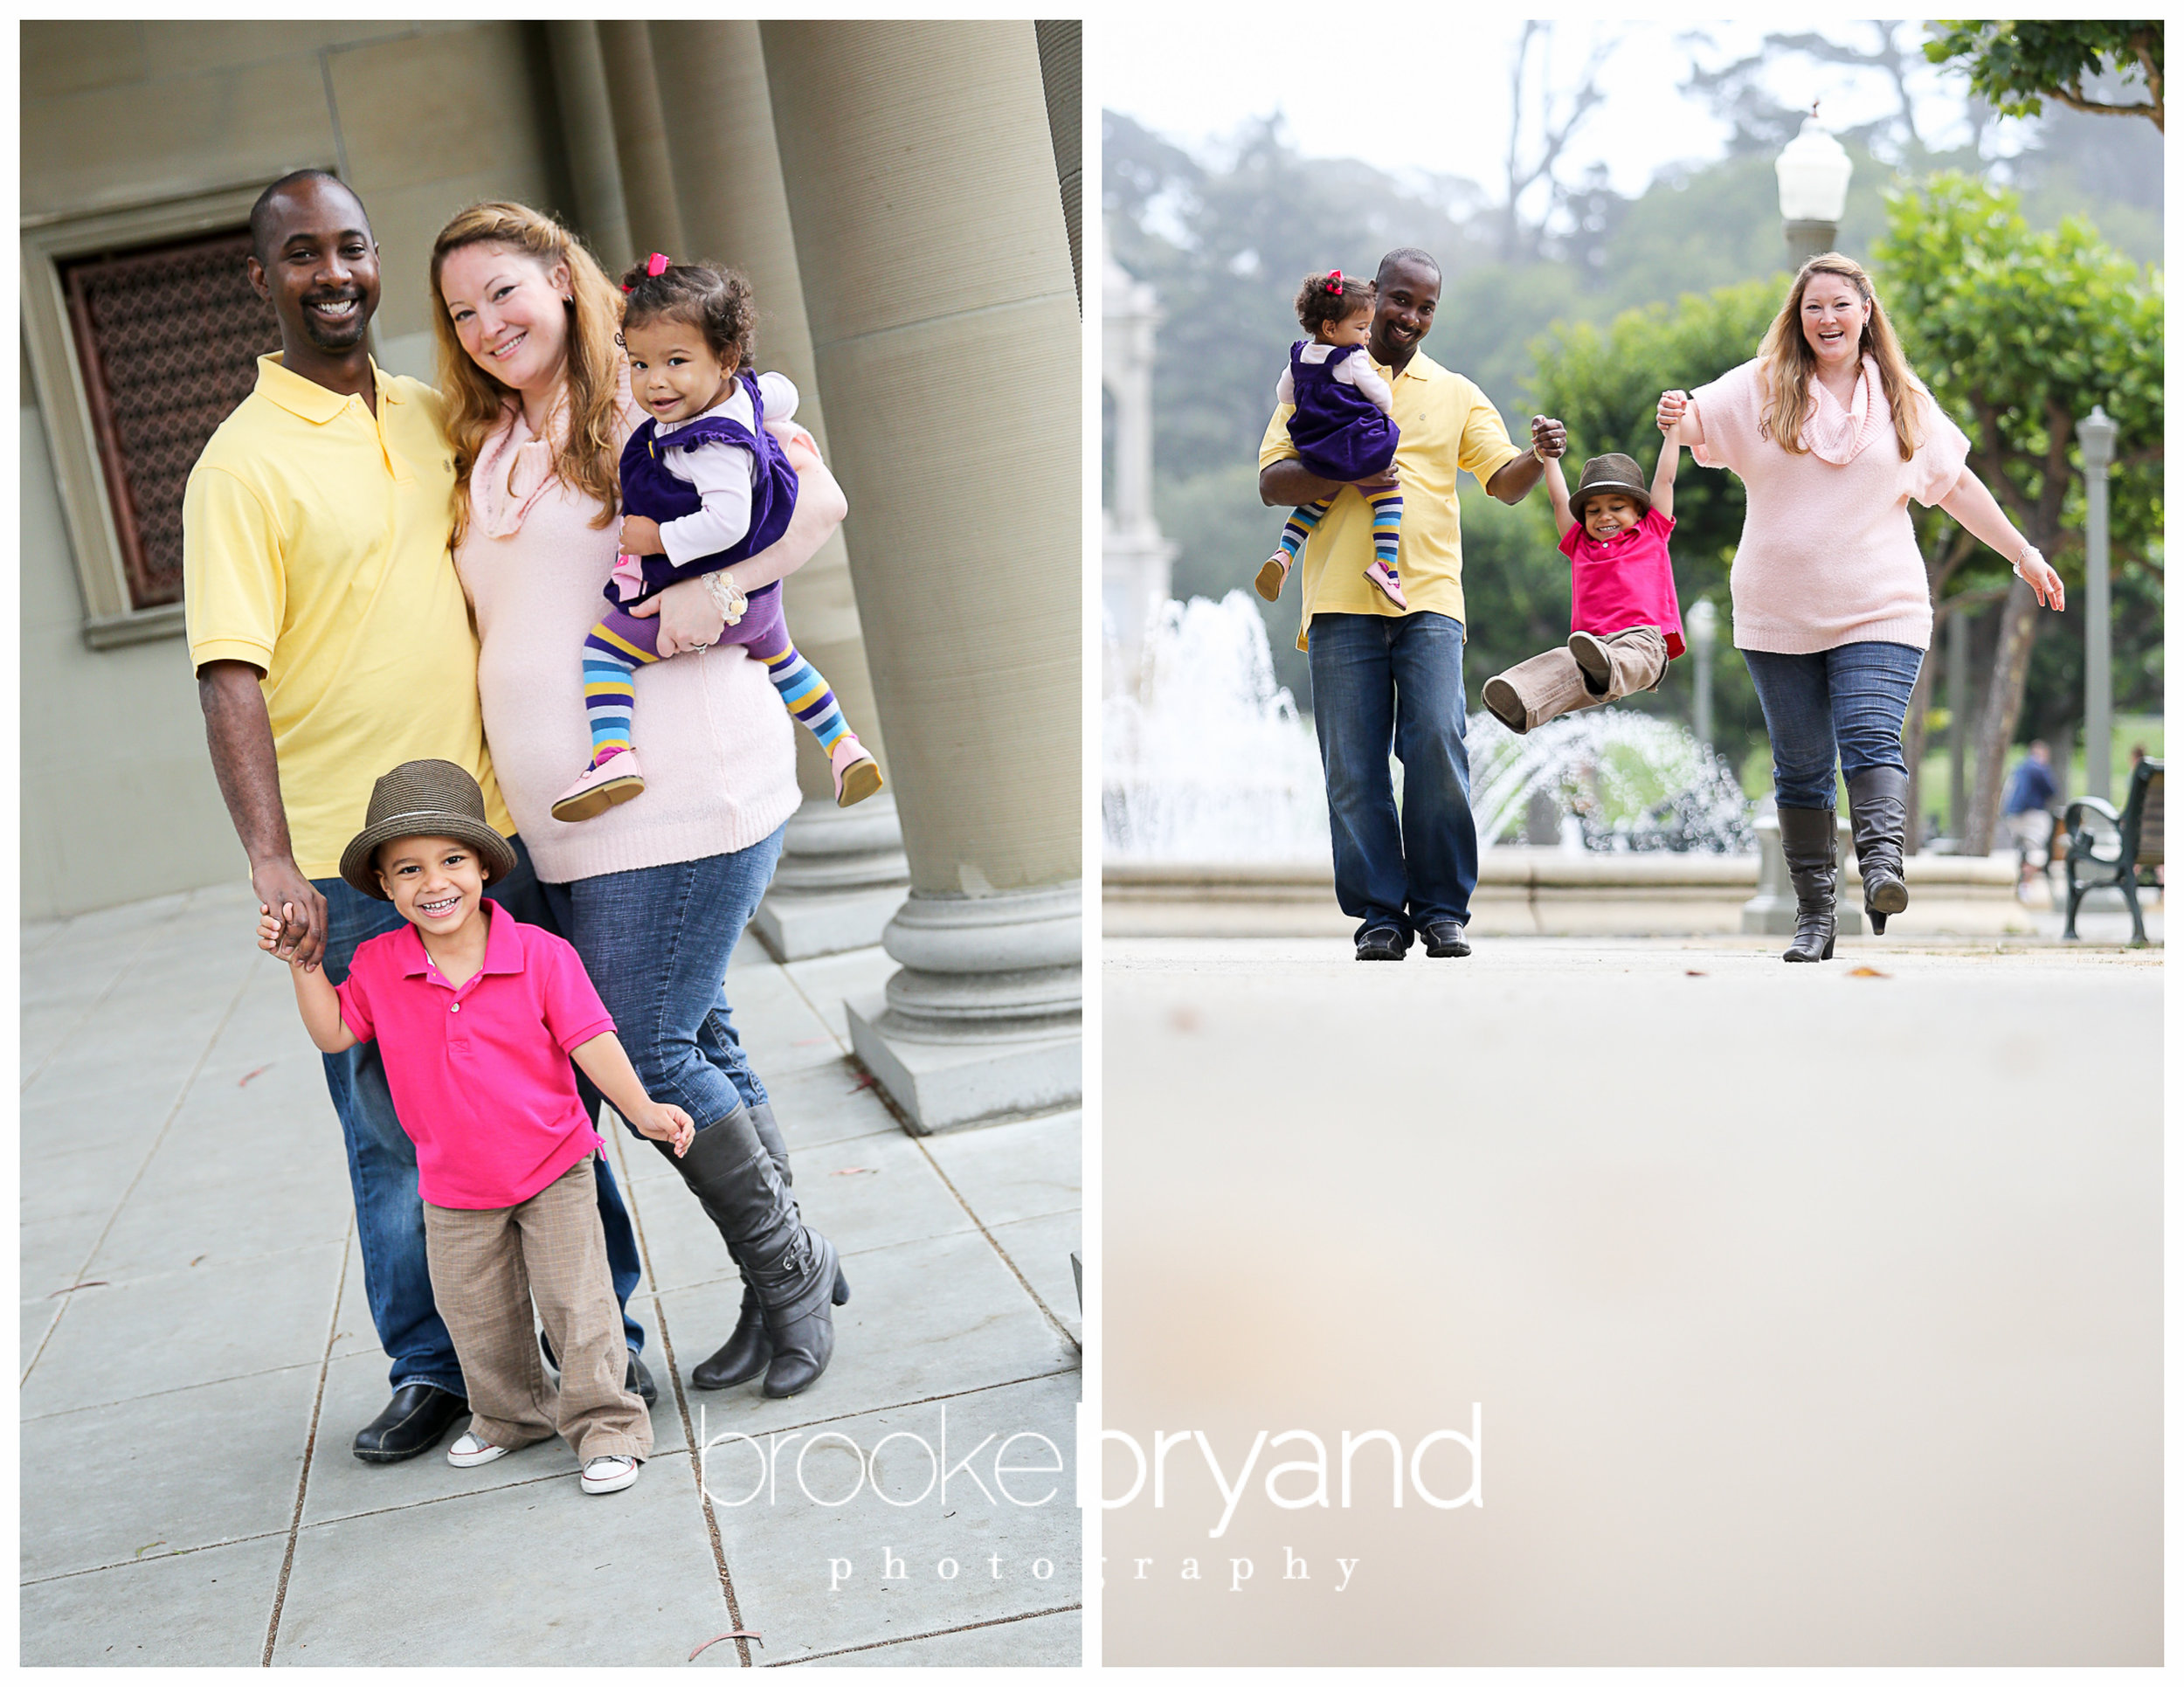 Brooke-Bryand-Photography-San-Francisco-Family-Photographer-Golden-Gate-Park-Photography-2-up-rowe-4.jpg